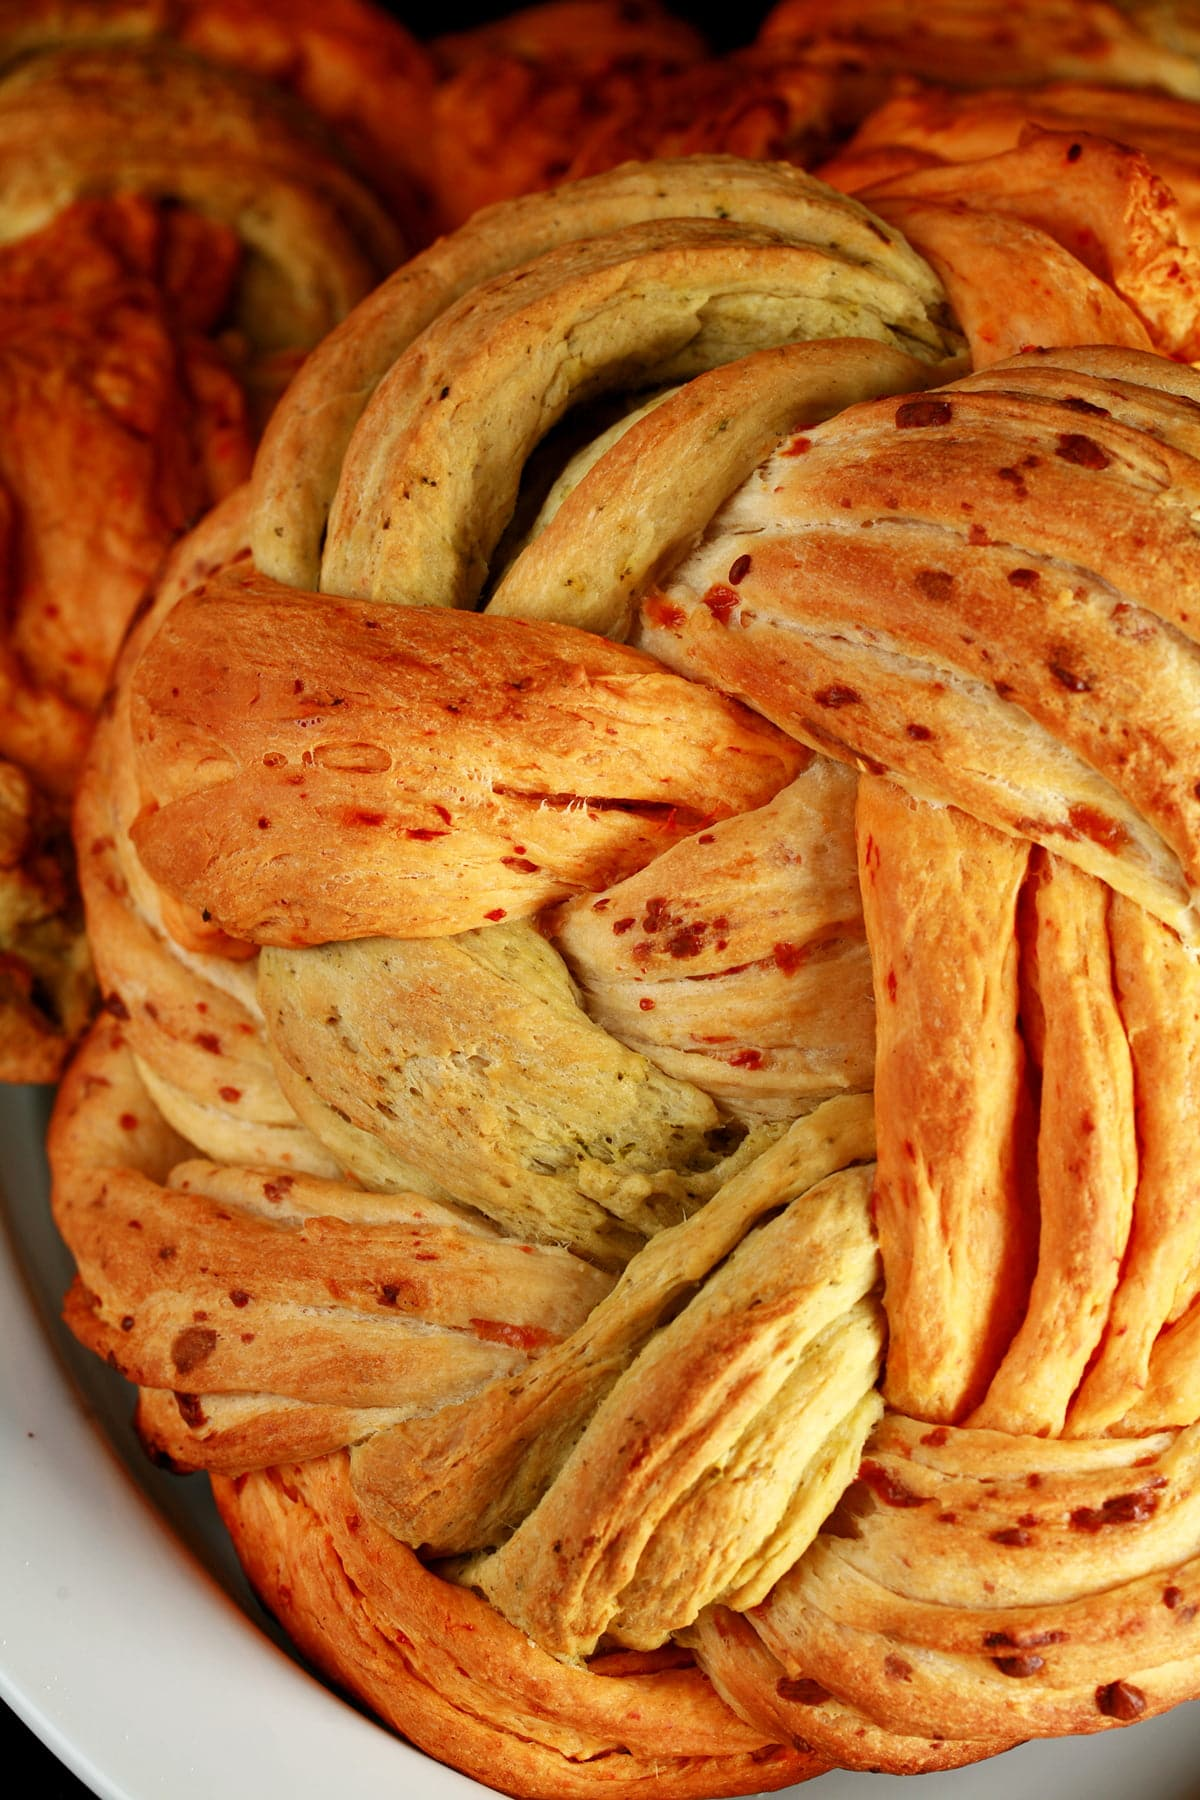 A large round loaf of a tri-colour braid bread. The breads are green/basil, tan/asiago, and red/roasted red pepper.